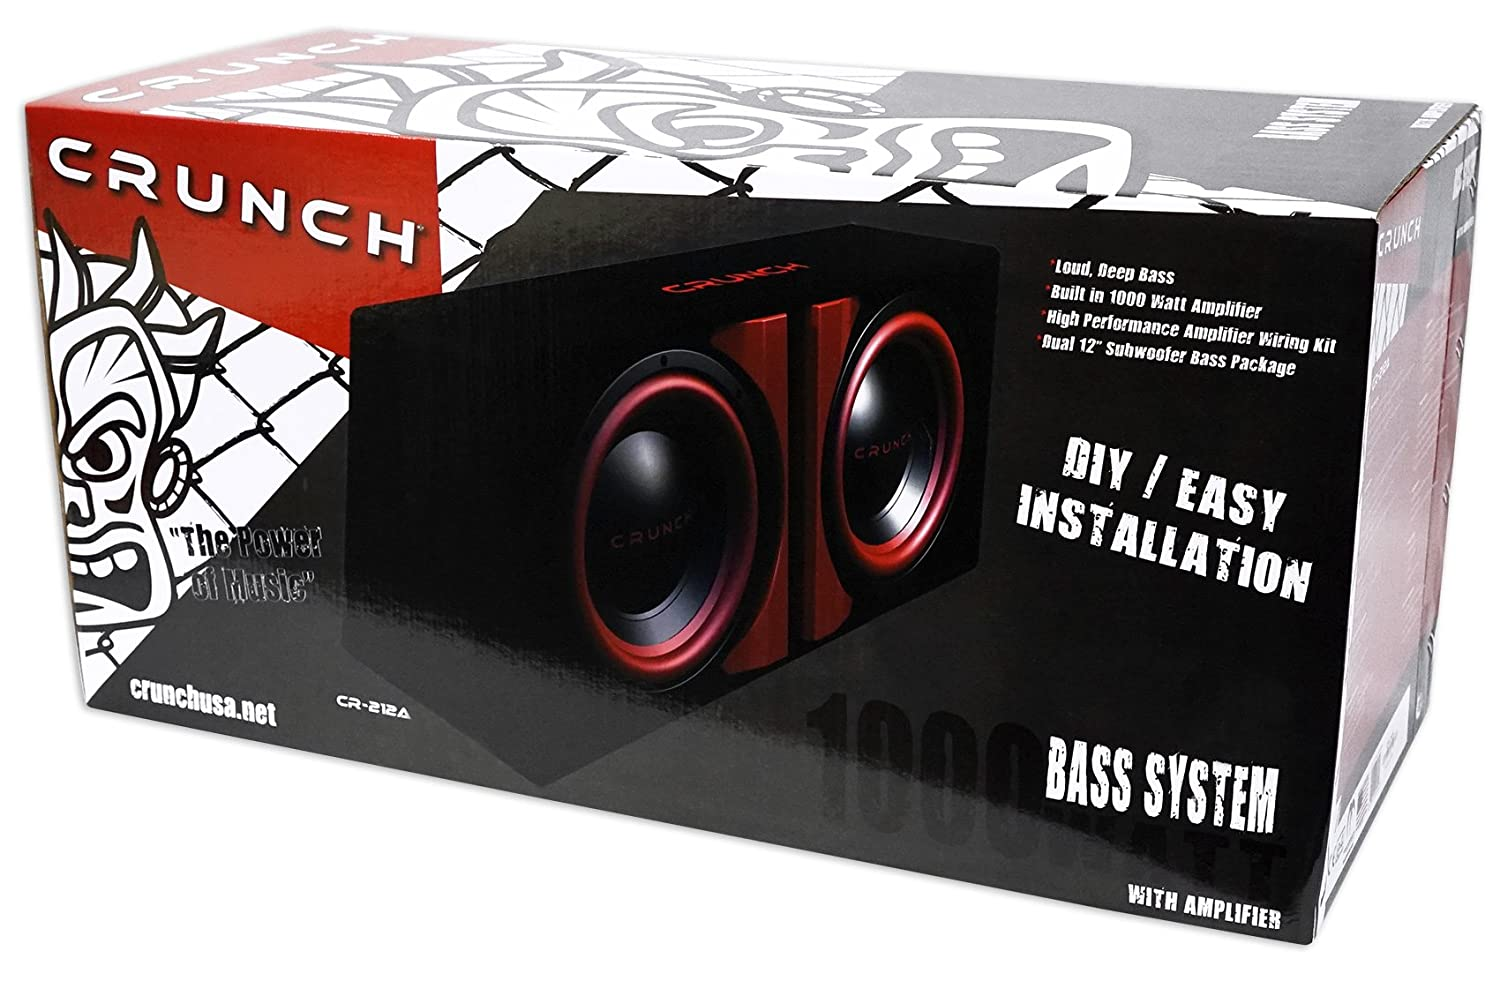 Crunch Cr 212a 1000w Dual 12 Powered Loaded Subwoofers Bass Box Wiring Kit In Enclosure Wire Car Electronics